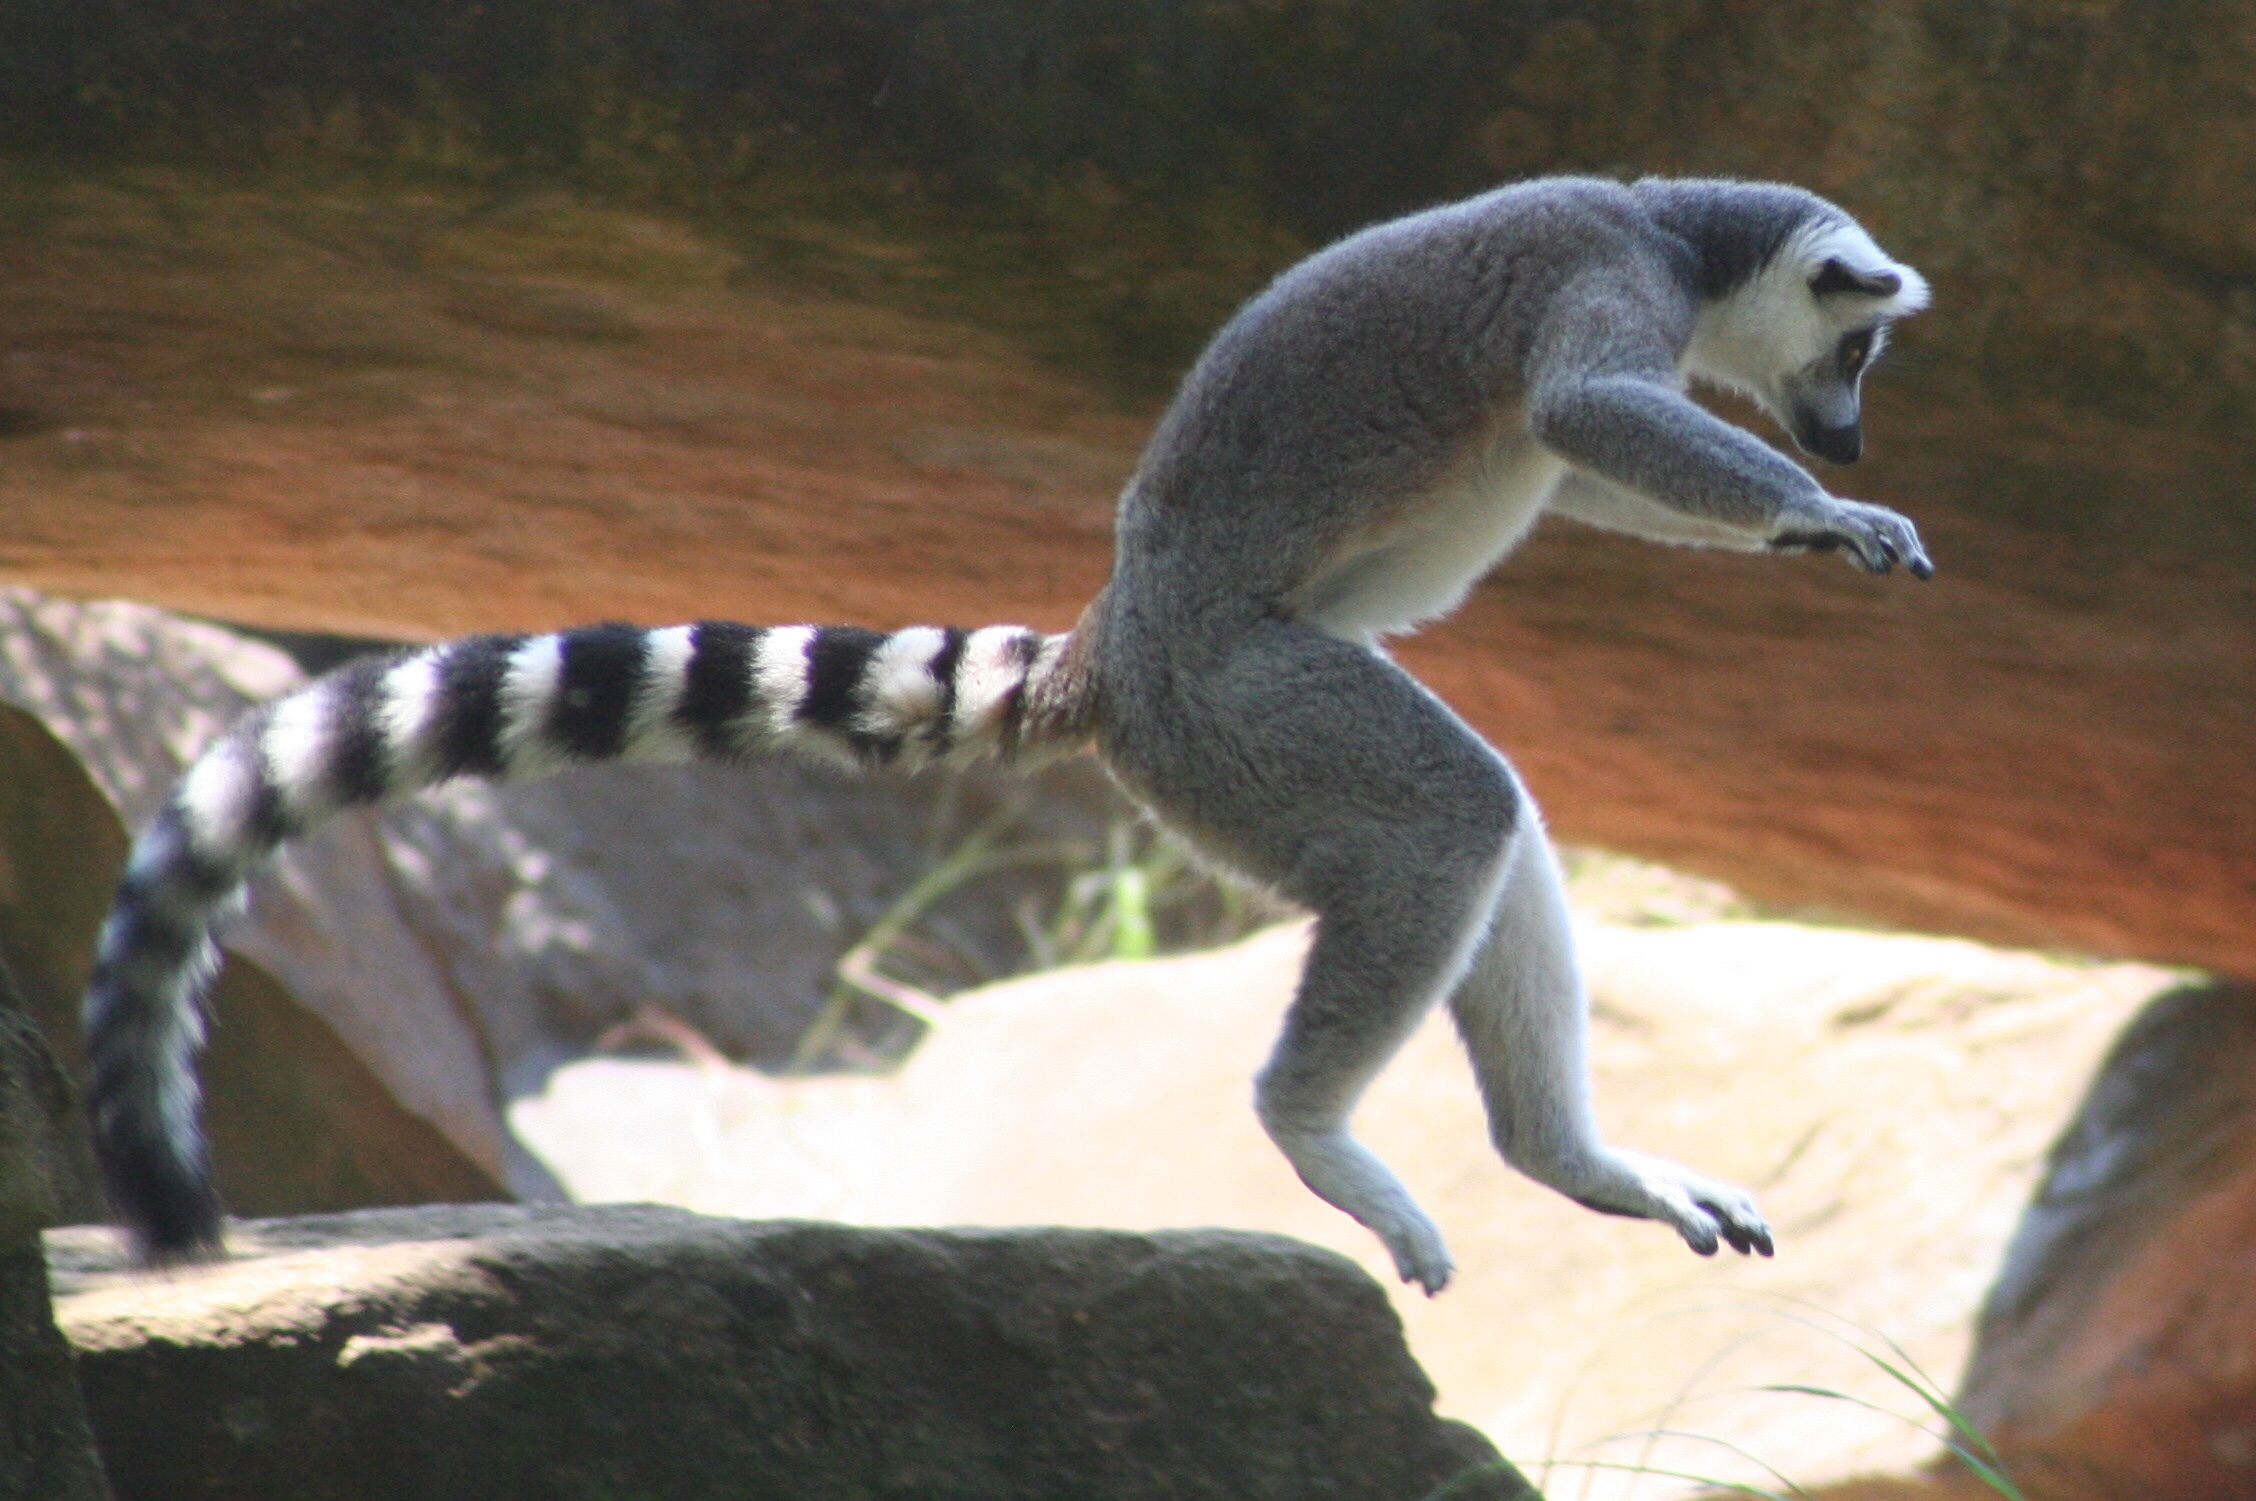 Weird Facts About Ring Tailed Lemurs